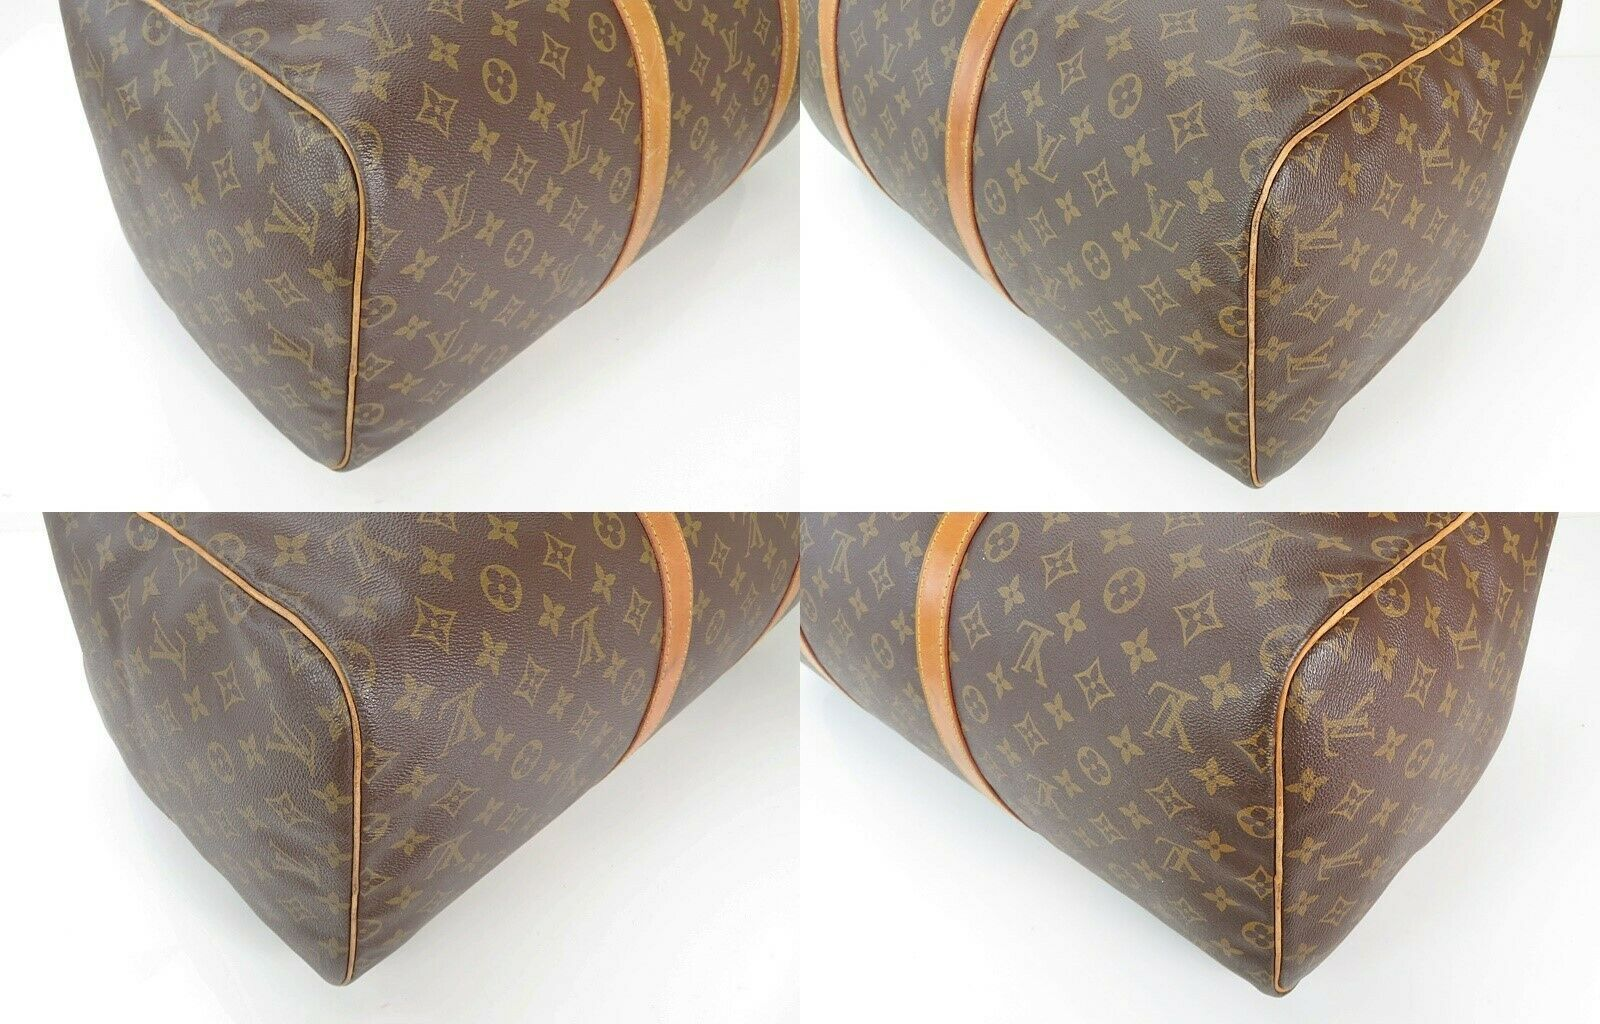 Authentic LOUIS VUITTON Sac Souple 55 Monogram Tote Duffle Bag #34978 image 6